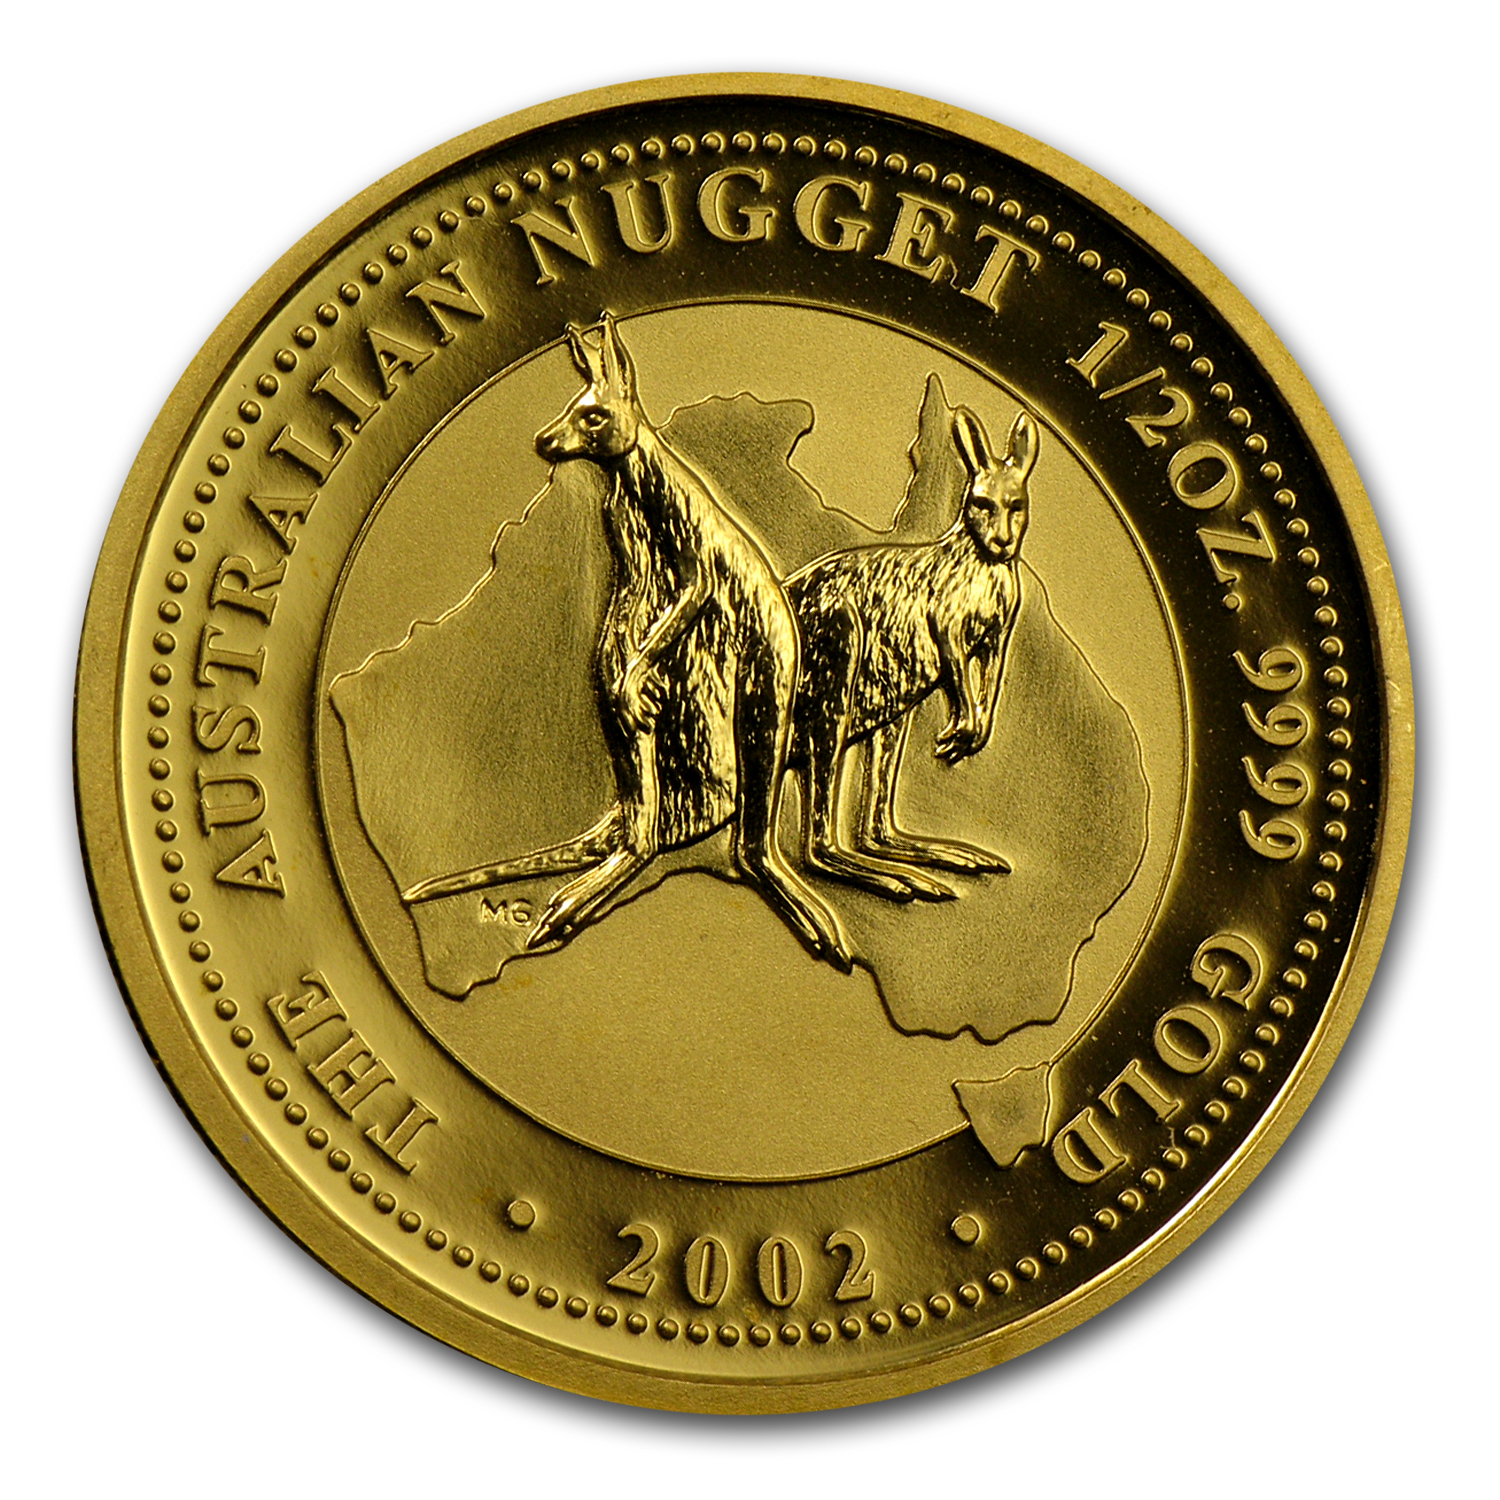 2002 1/2 oz Australian Gold Nugget